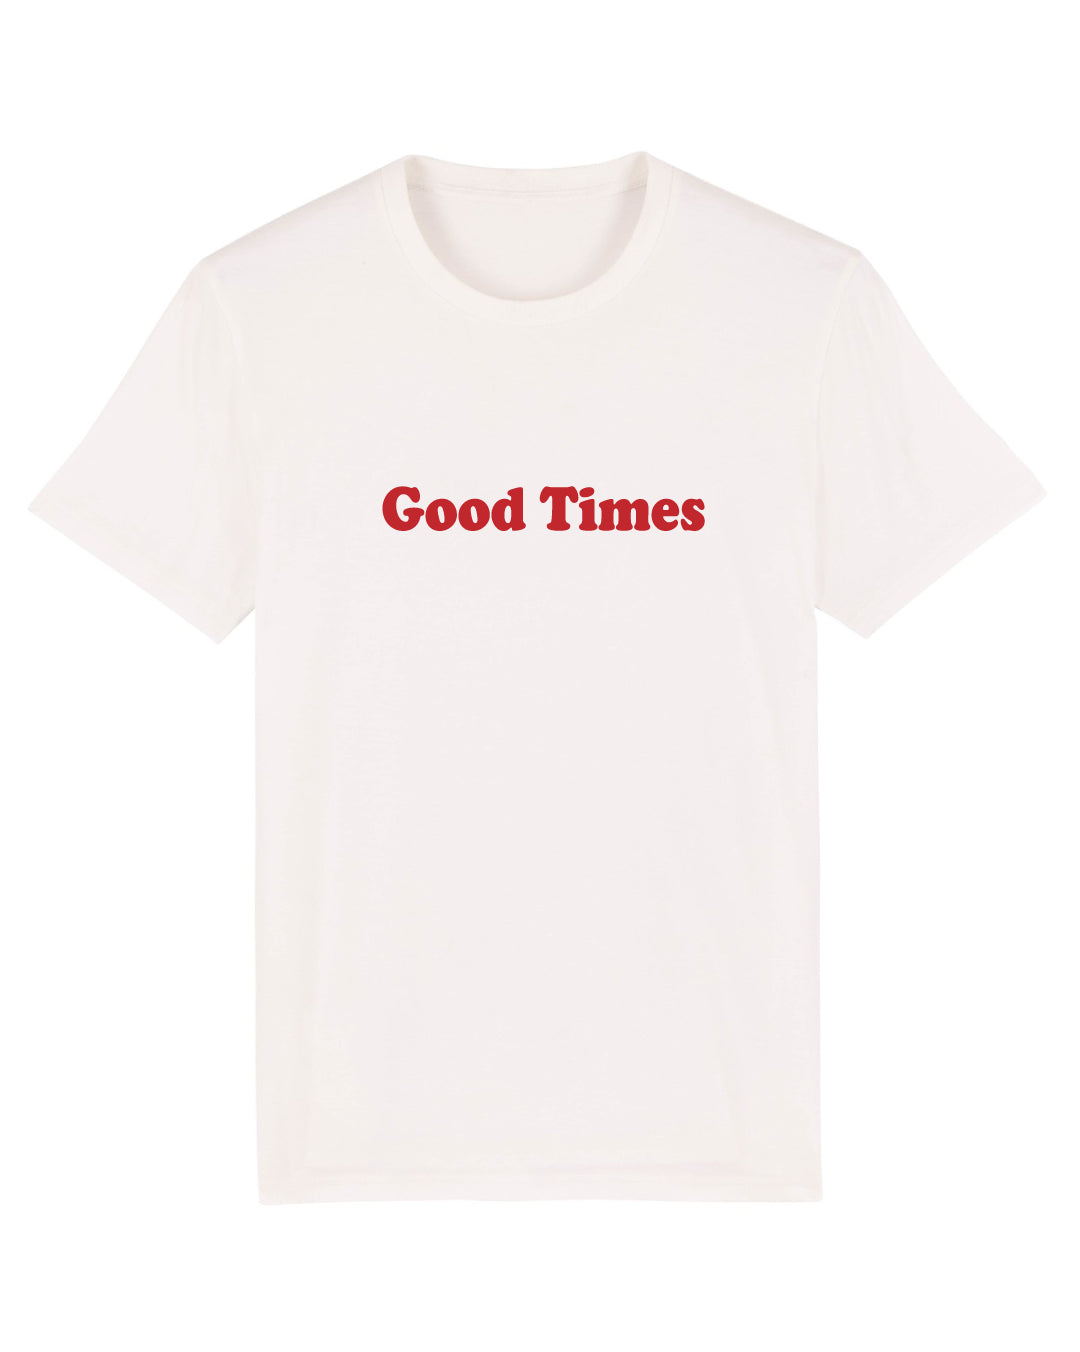 Good Times - Women's Organic Cotton Print Tee - White - SMALL ONLY